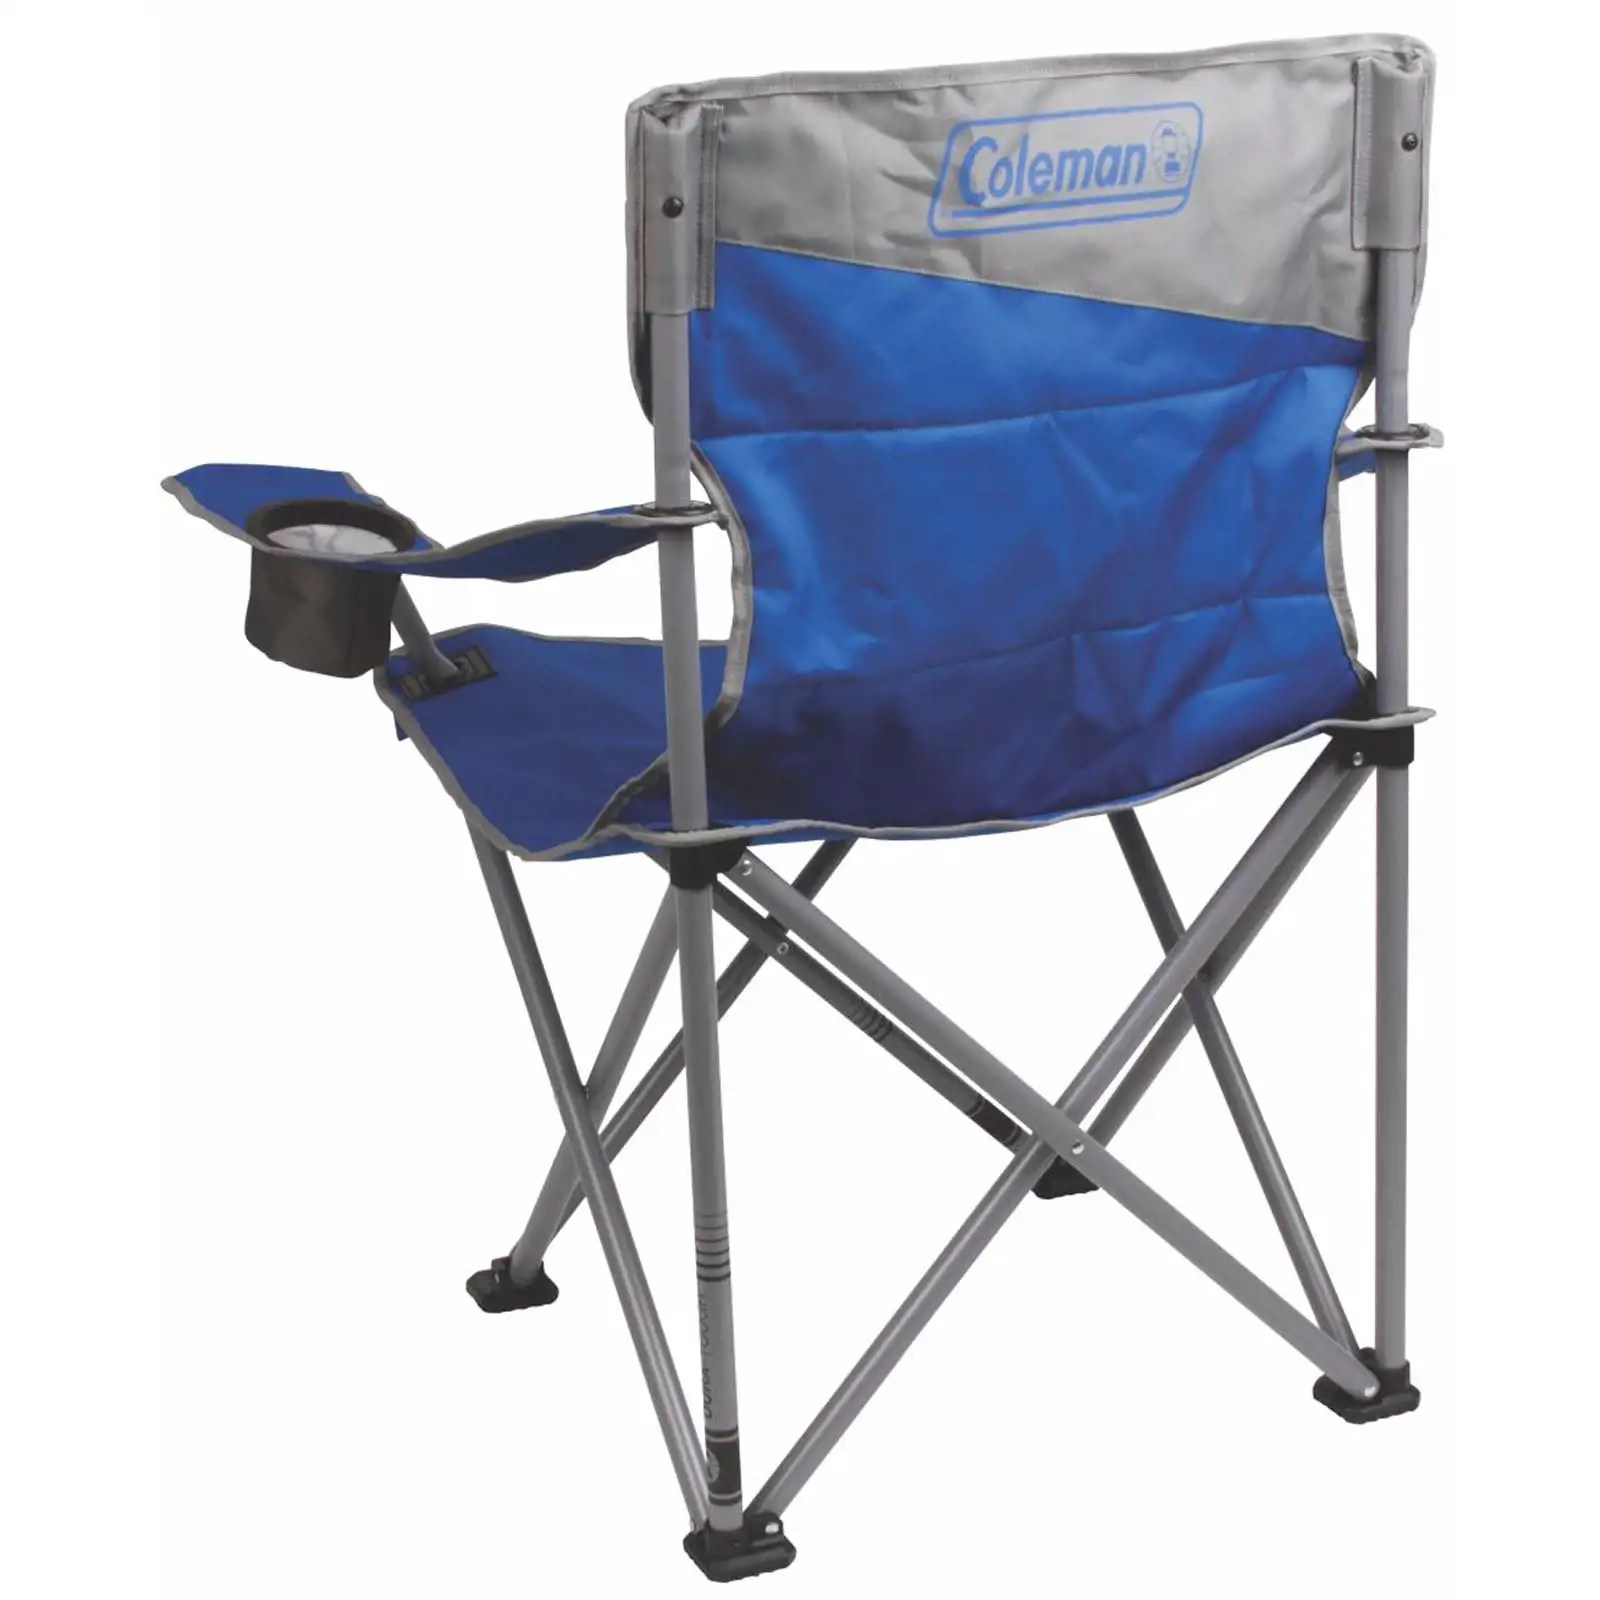 Oversized Patio Chairs 2 Coleman Camping Outdoor Beach Folding Big N Tall